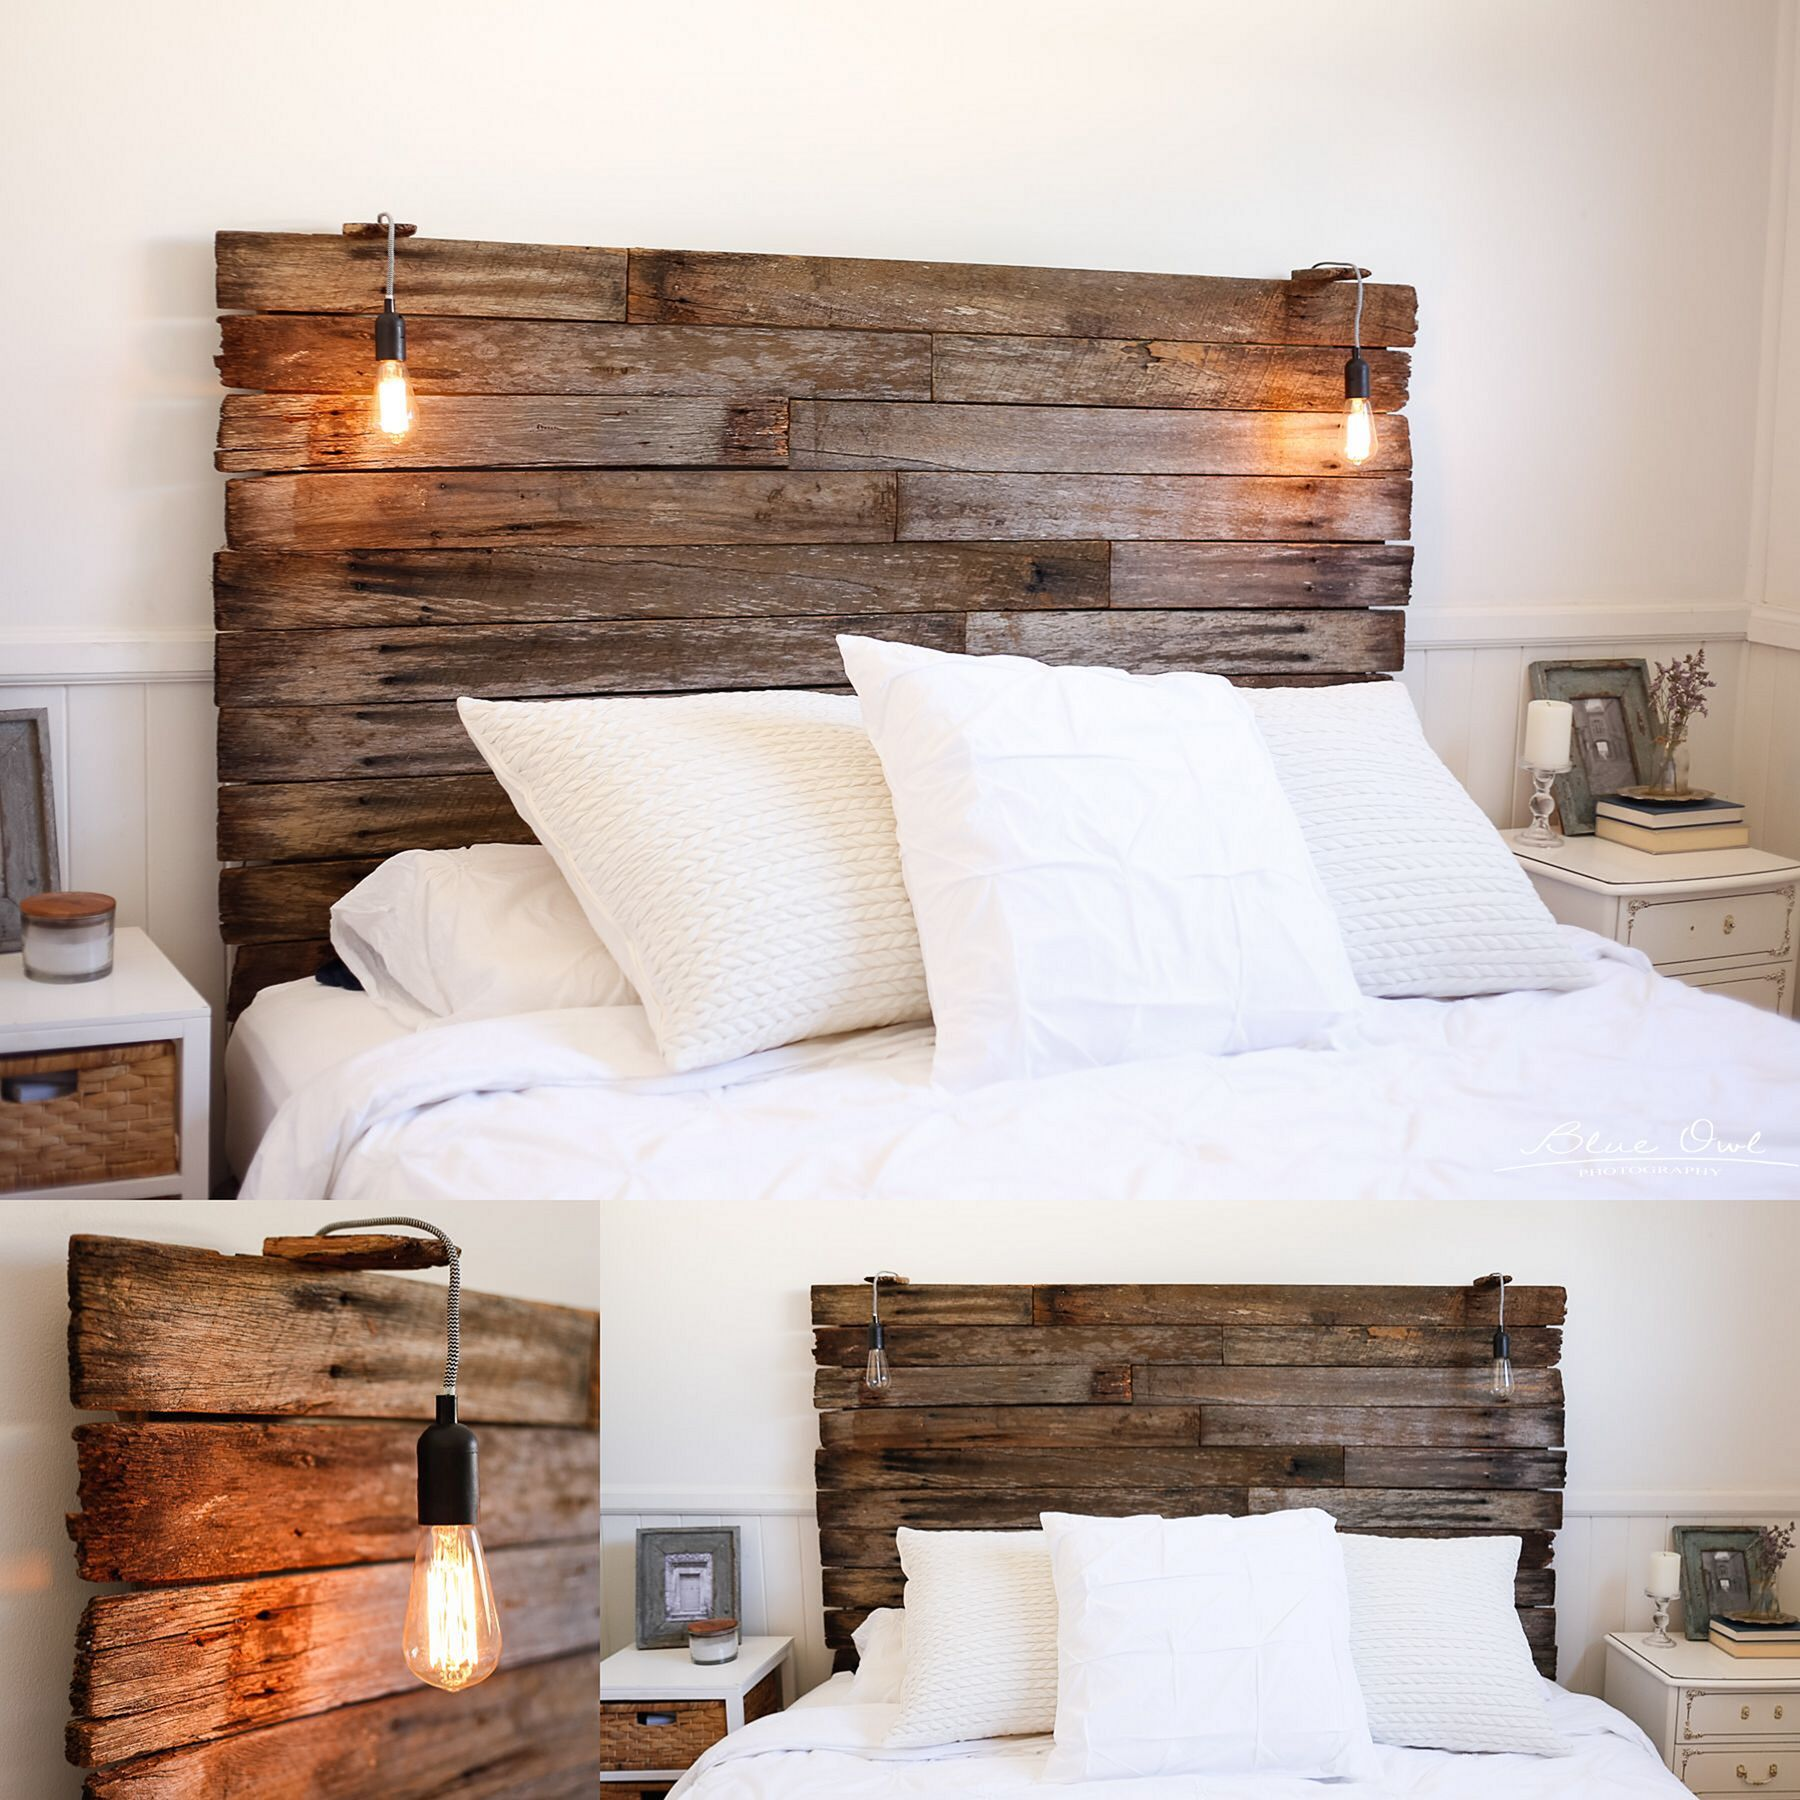 Decorating Com: Pin By Decorazing On Bedroom Design & Decor Ideas In 2019